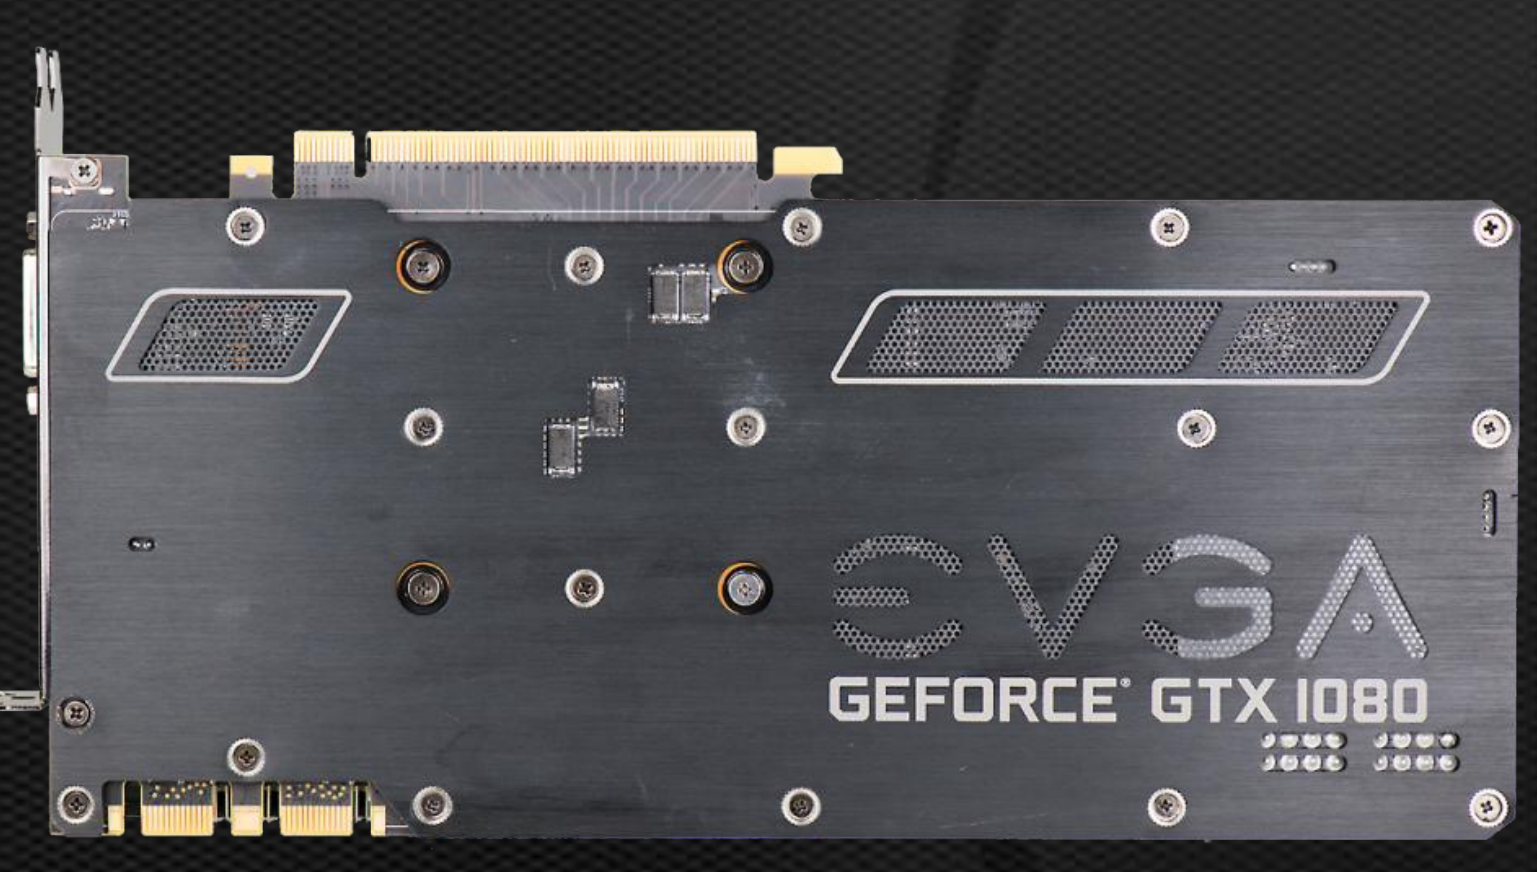 EVGA GTX 1080 FTW review: The most powerful graphics card in